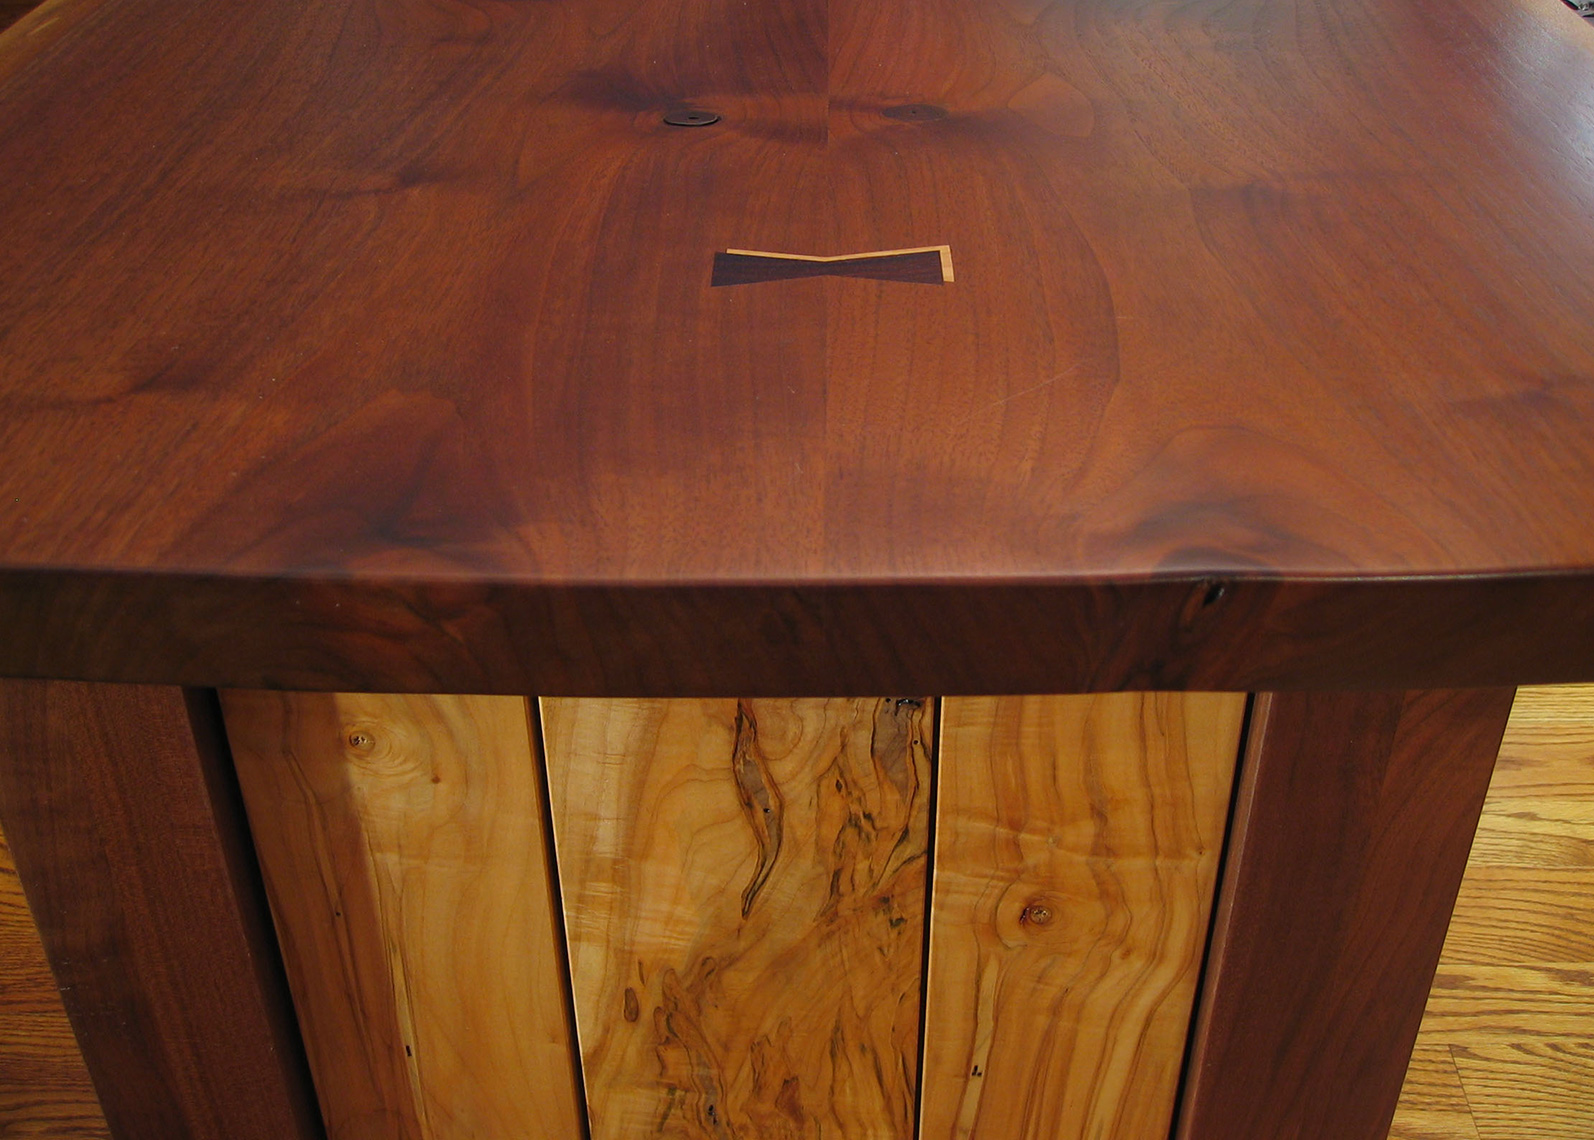 custom cabinets Morris County, NJ-Office-Desk-Walnut-Ambrosia-Maple-Woodworking-3